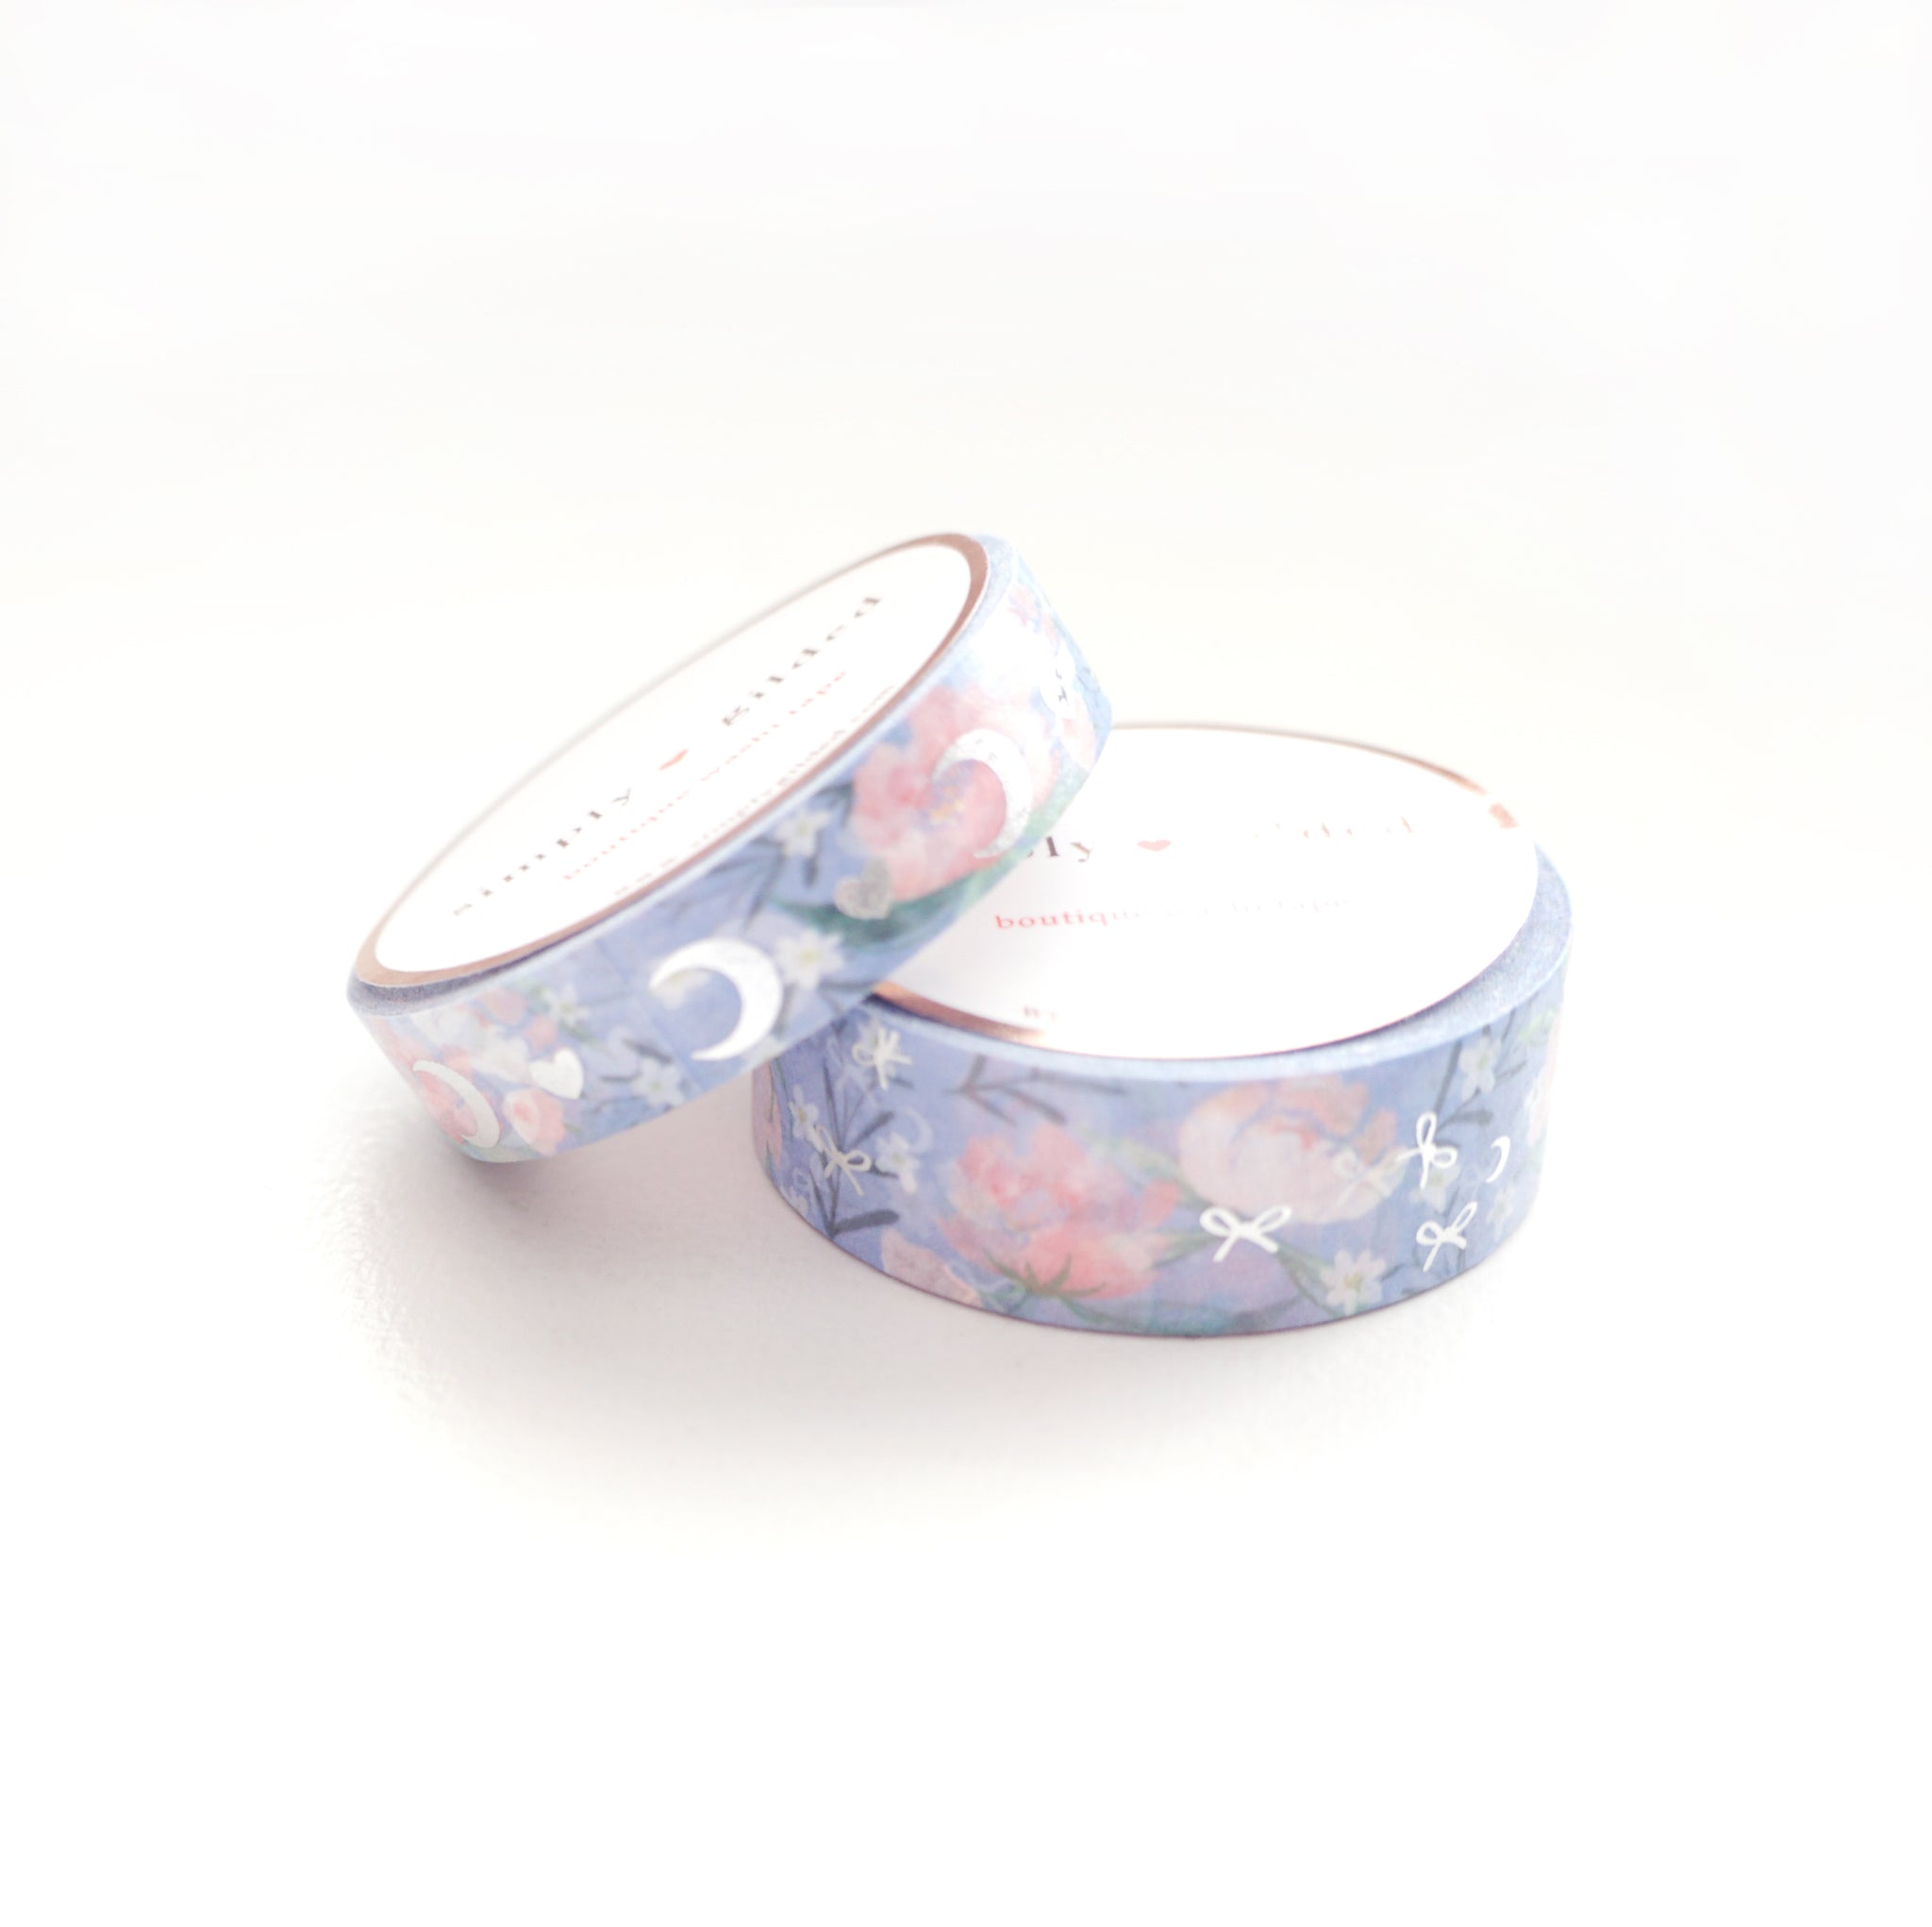 WASHI 15/10mm set - Cornflower BLUE HEART & MOON + Silver - OOPS